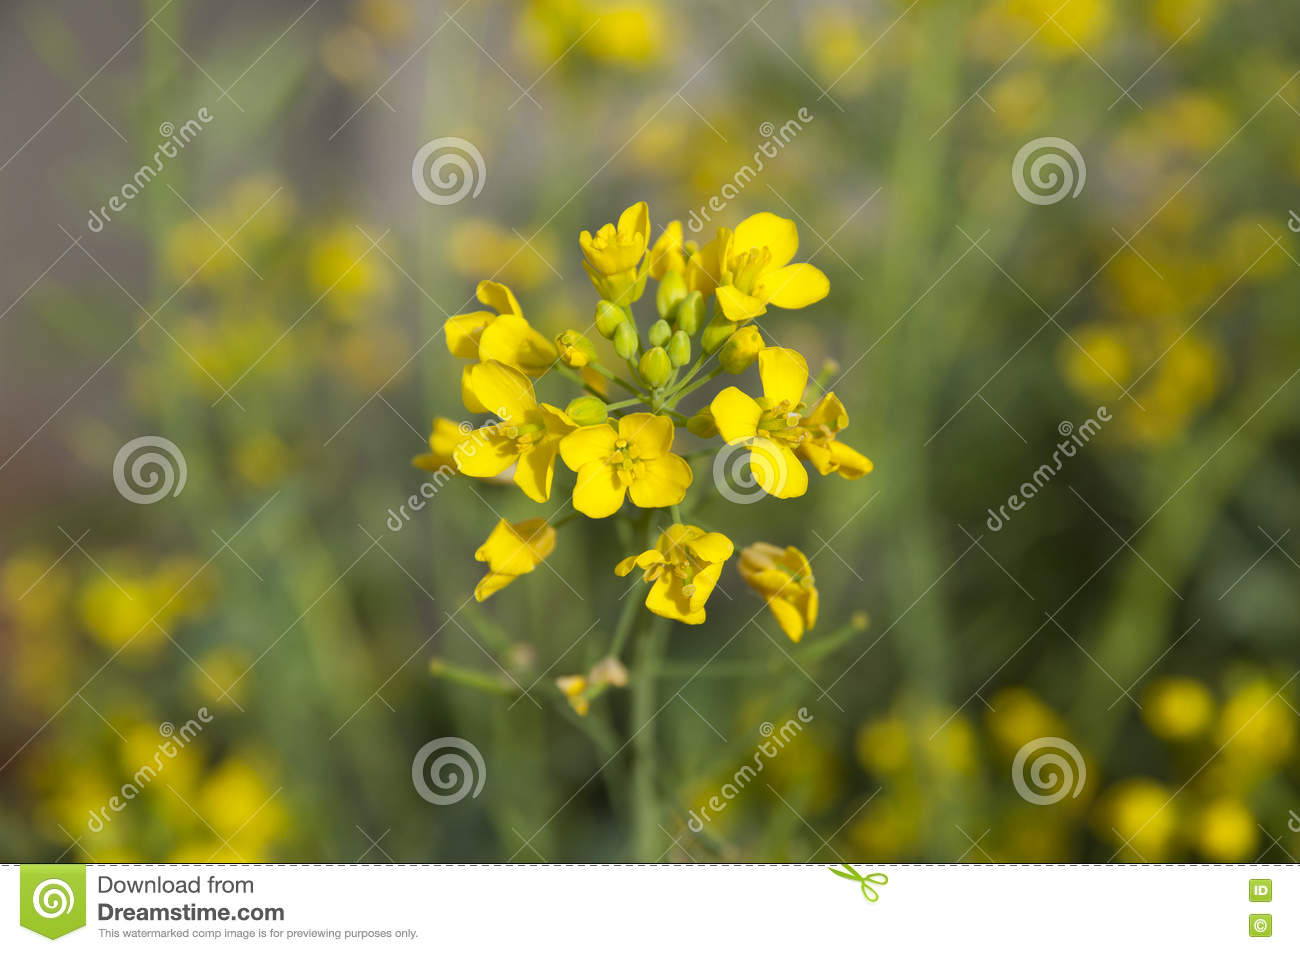 Mustard yellow flowers stock photo image of blurred 68647190 download mustard yellow flowers stock photo image of blurred 68647190 mightylinksfo